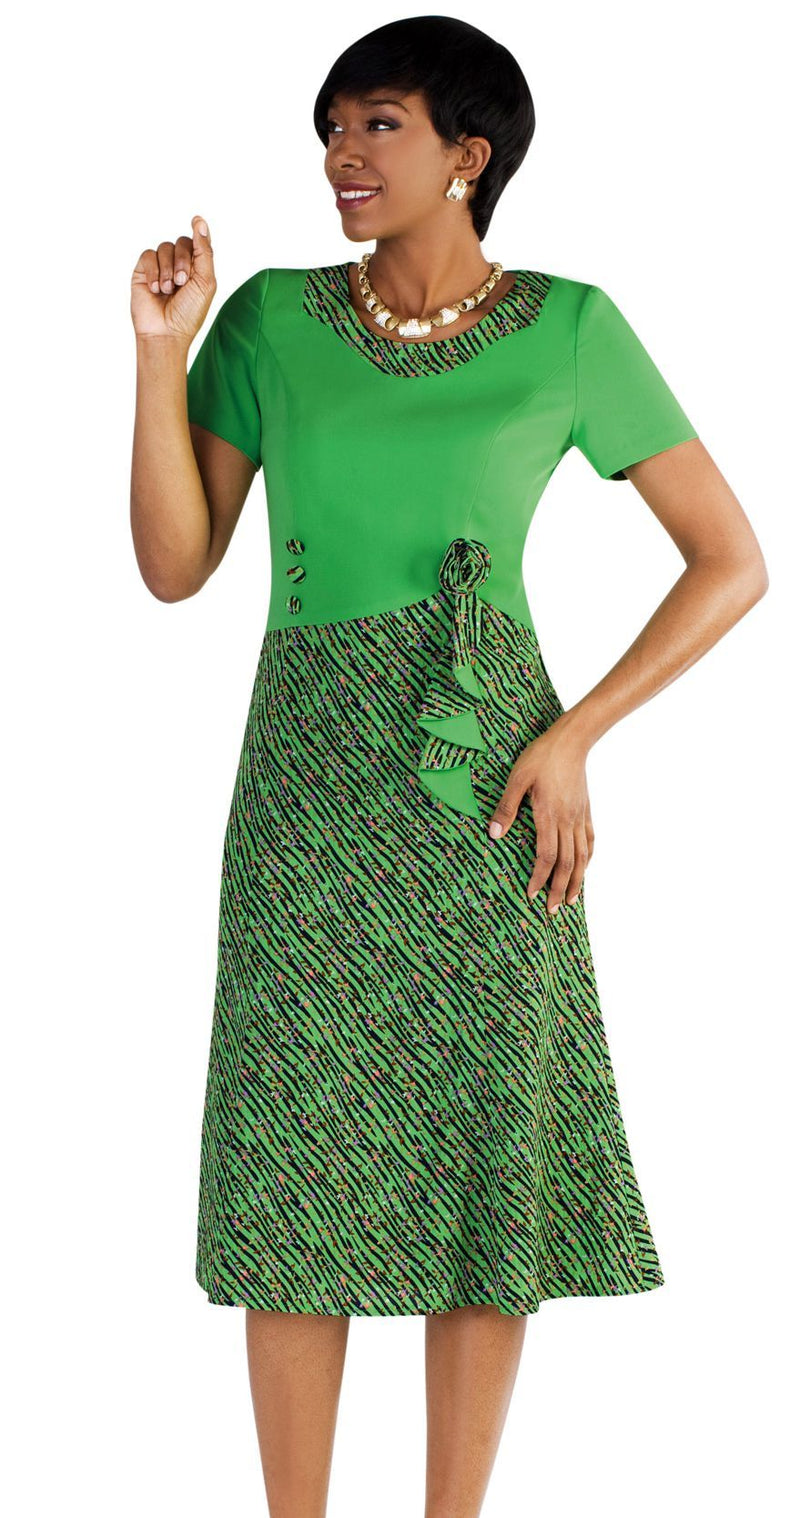 Tally Taylor Dress 9444-Summer Lime - Church Suits For Less